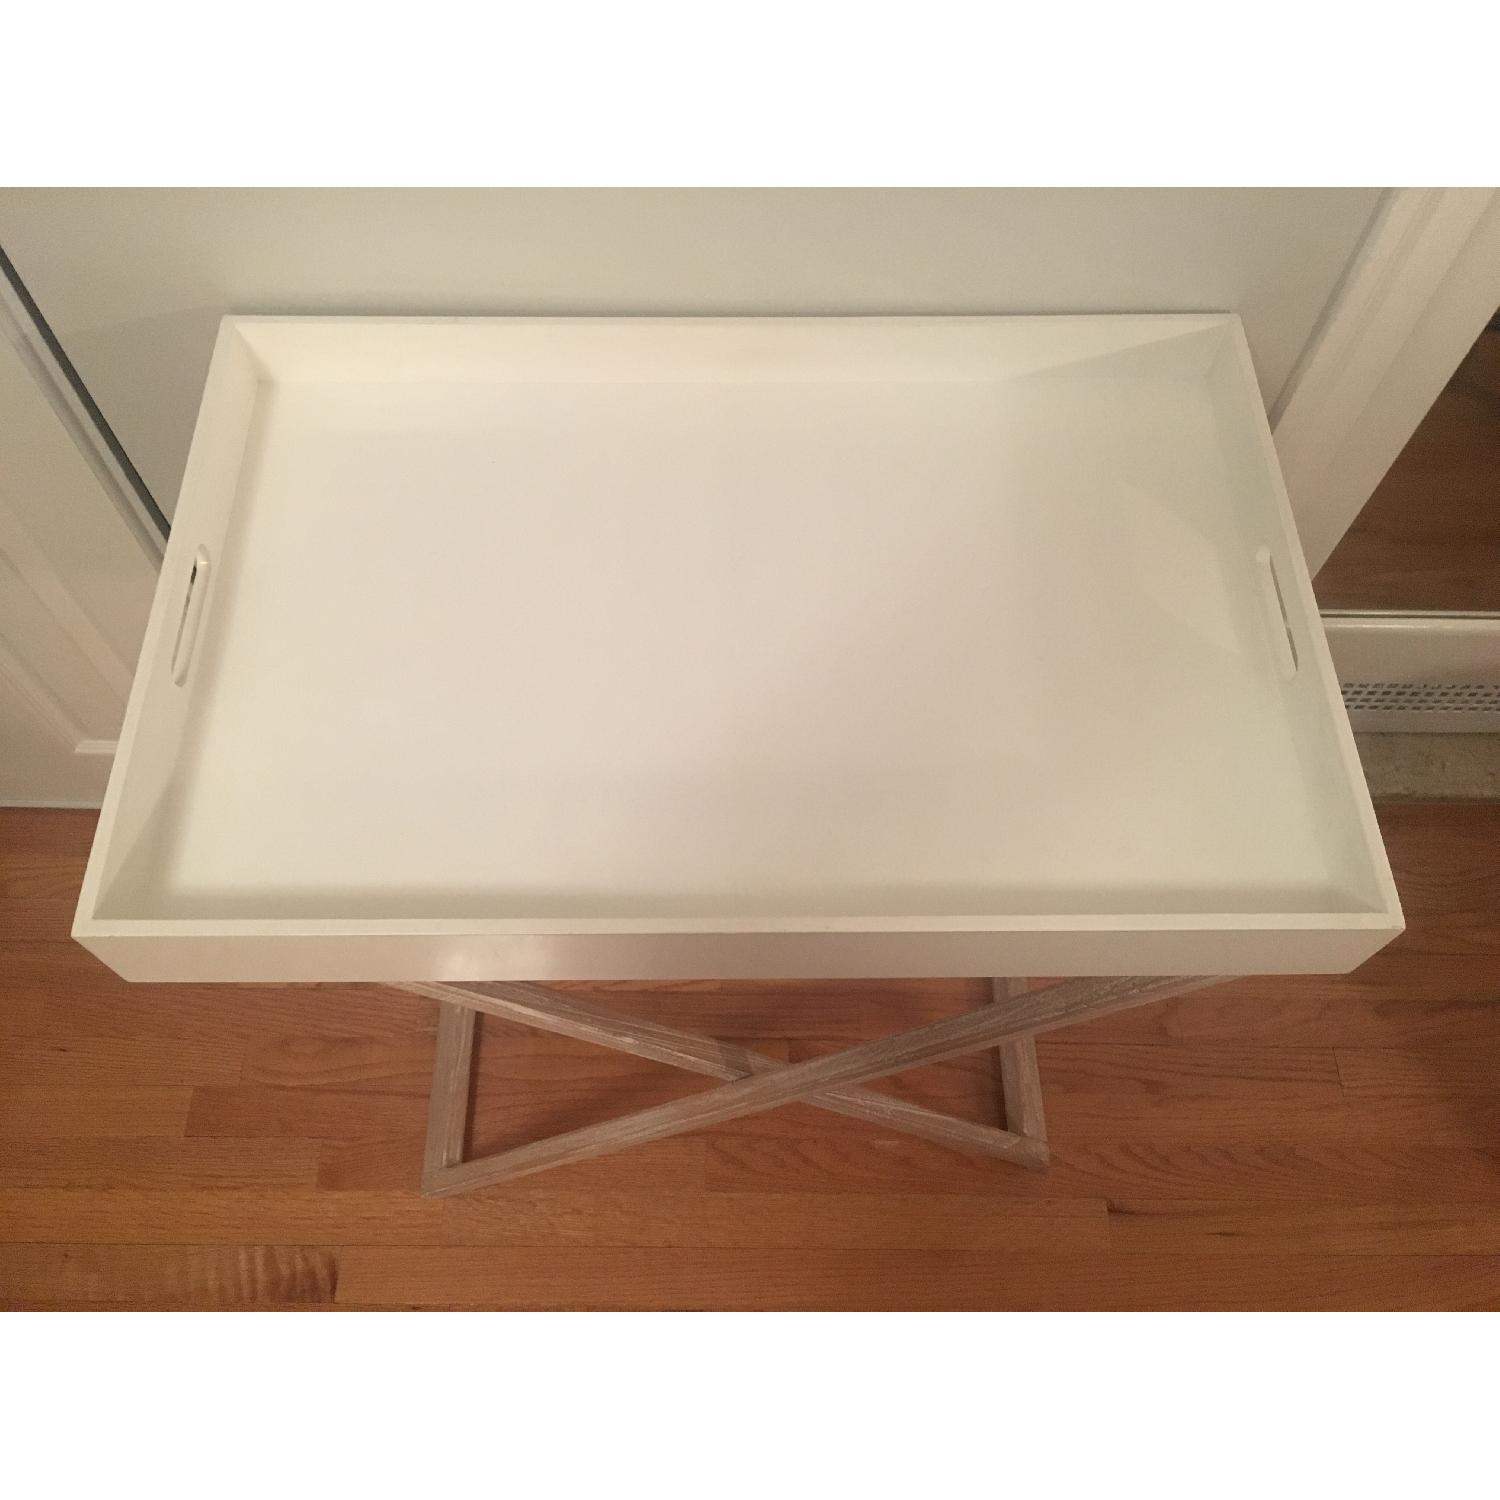 West Elm Butler Tray Table in White Lacquer & White Wood-0